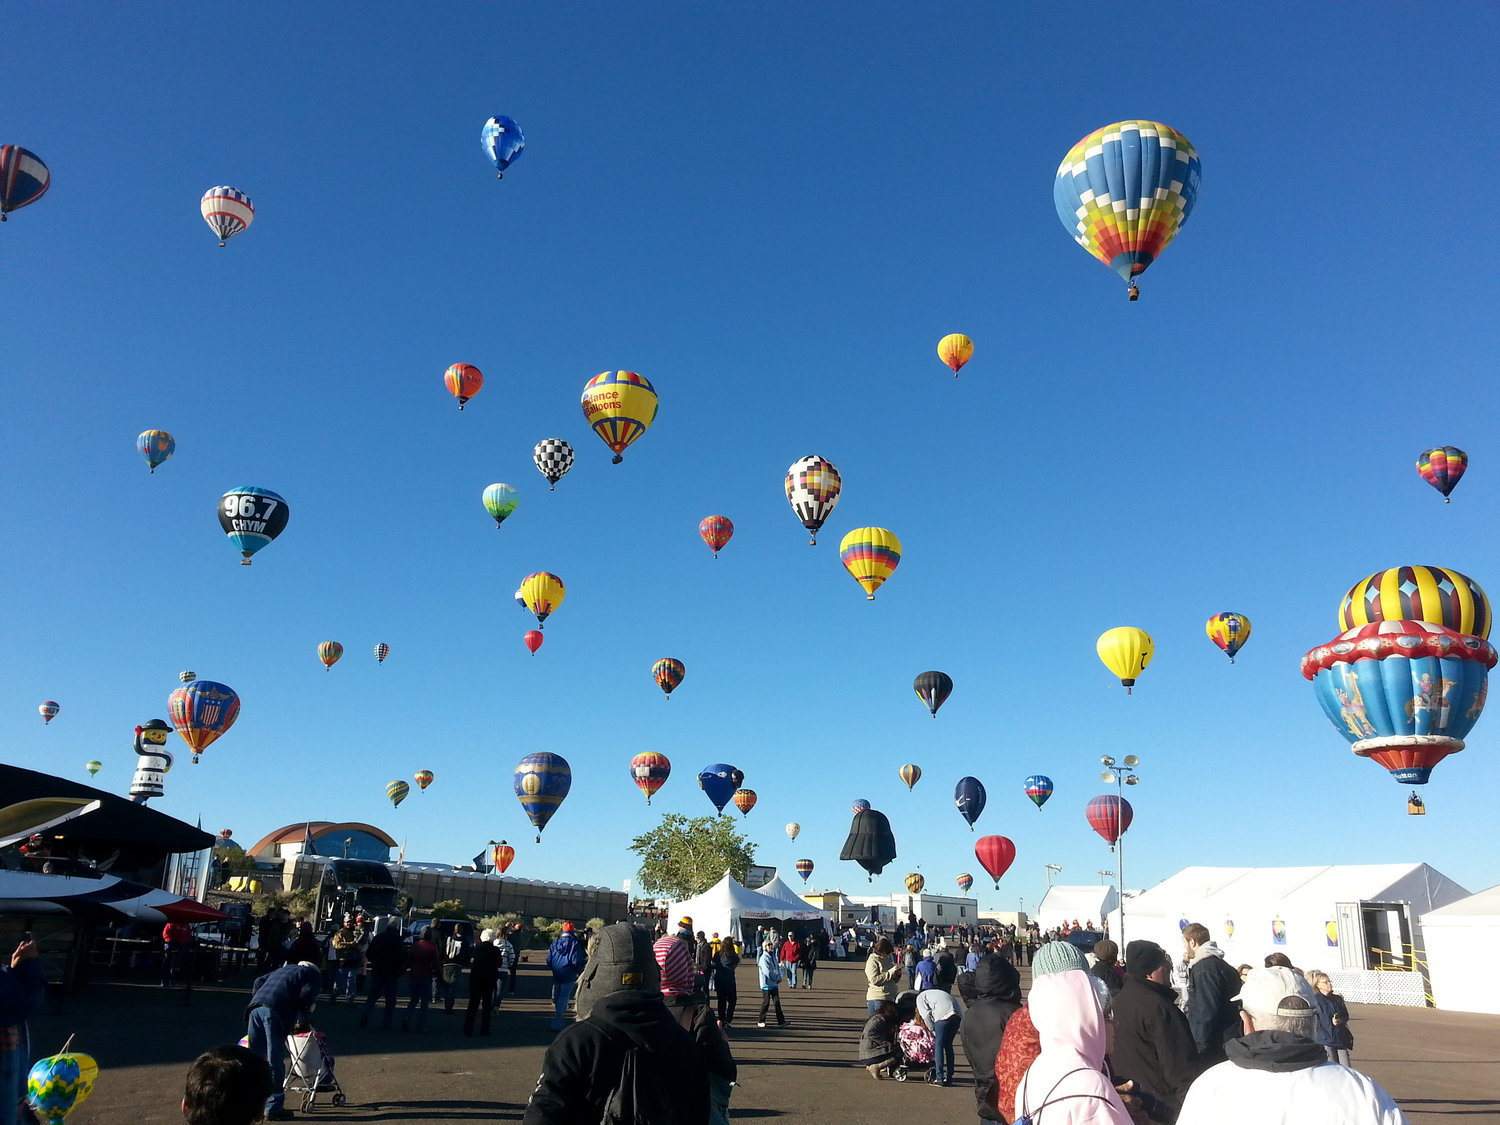 The famous Albuquerque Balloon Festival